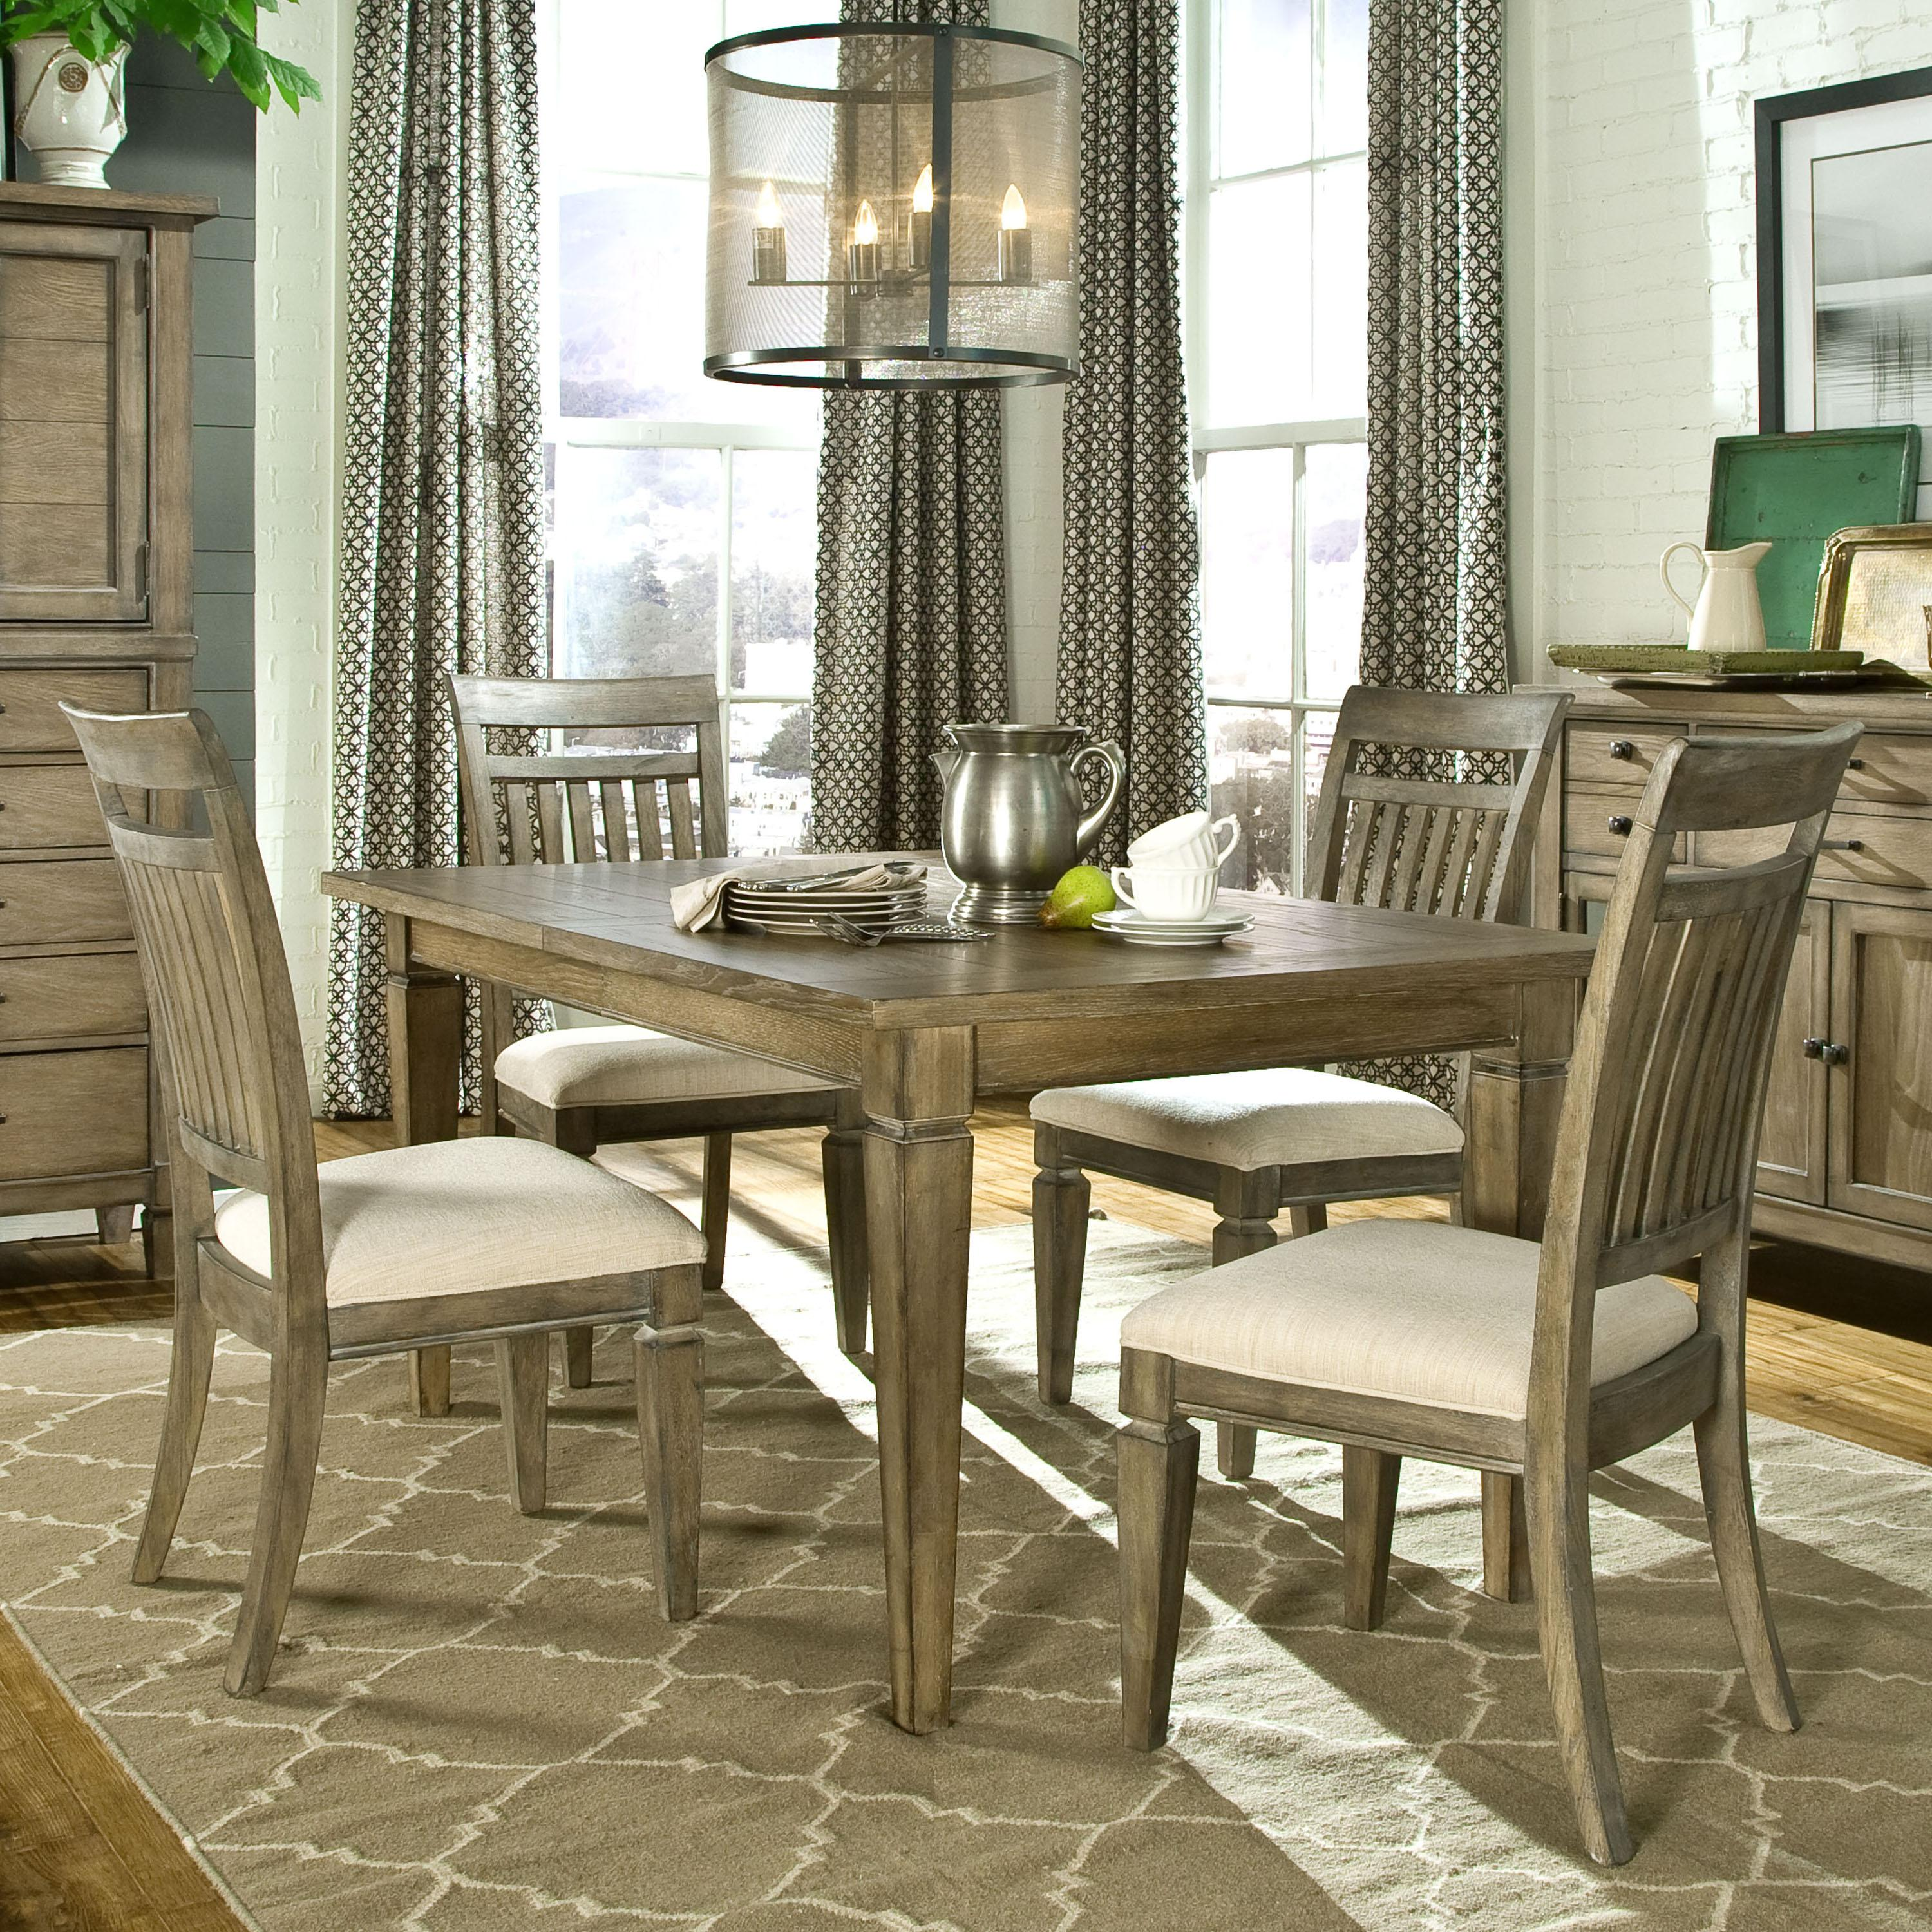 village 5 piece dining set with leg table and slat back side chairs